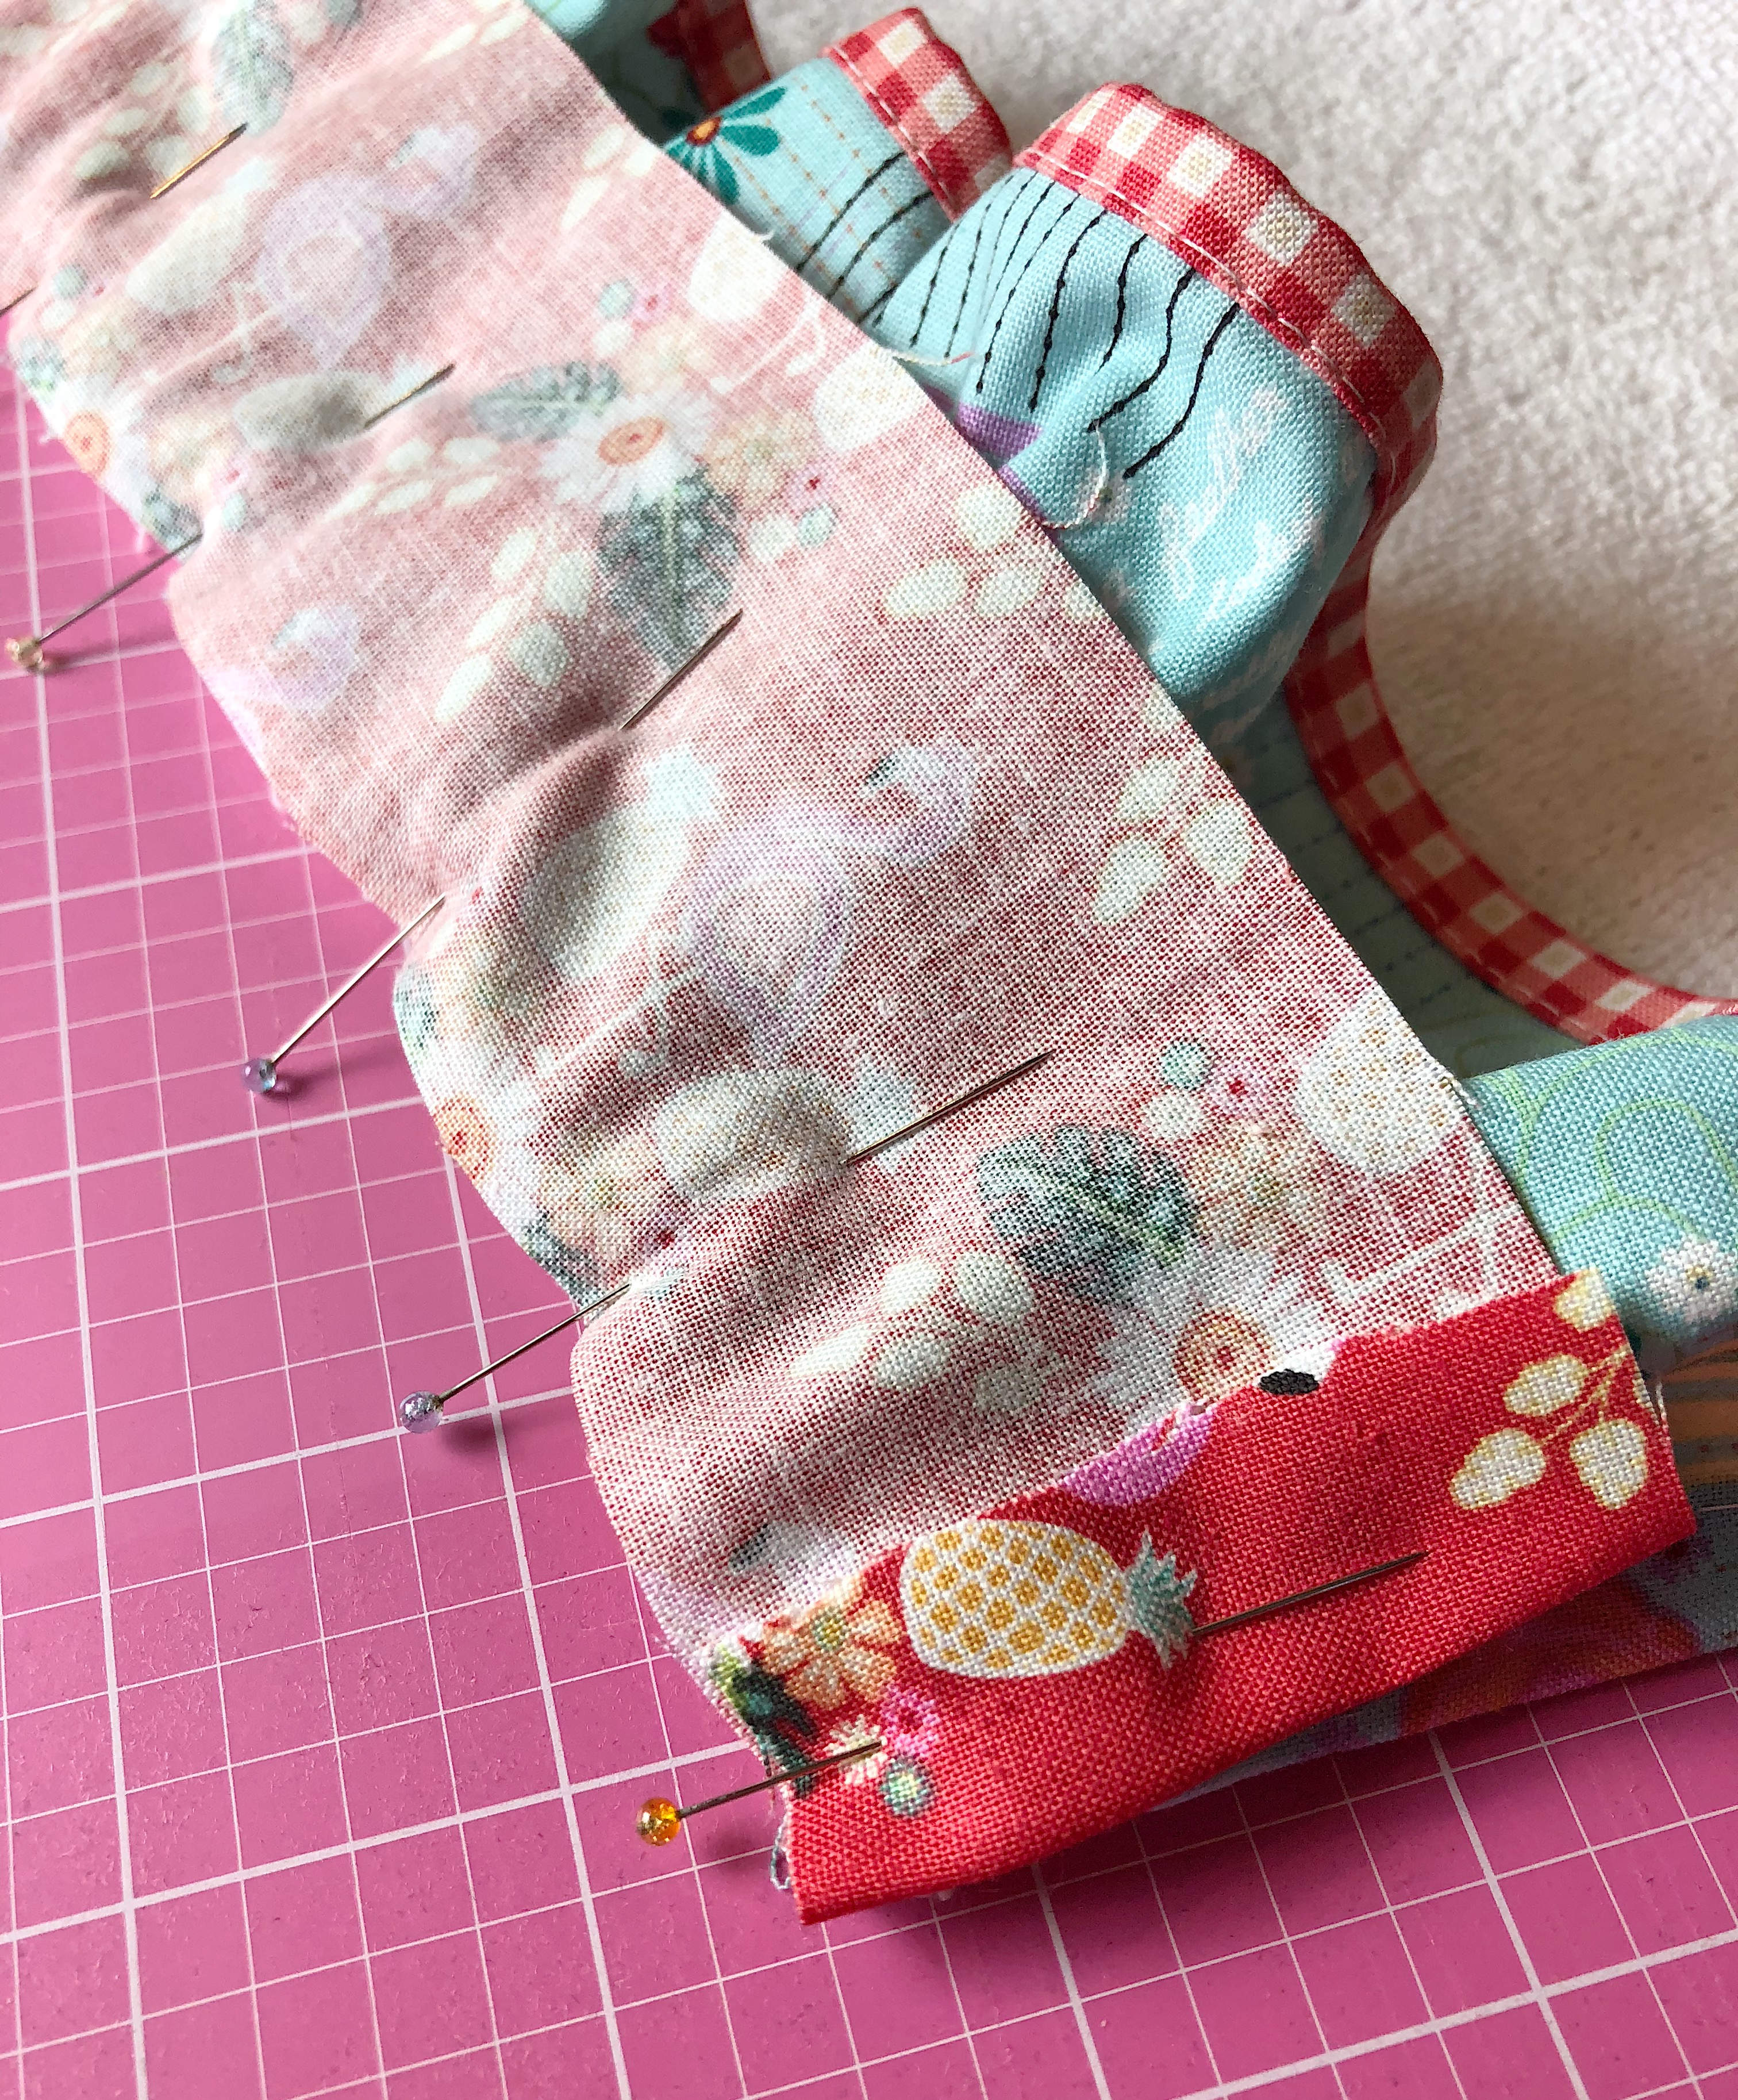 Tutorial Tuesday #1 - Embellished Towels and Napkins - My